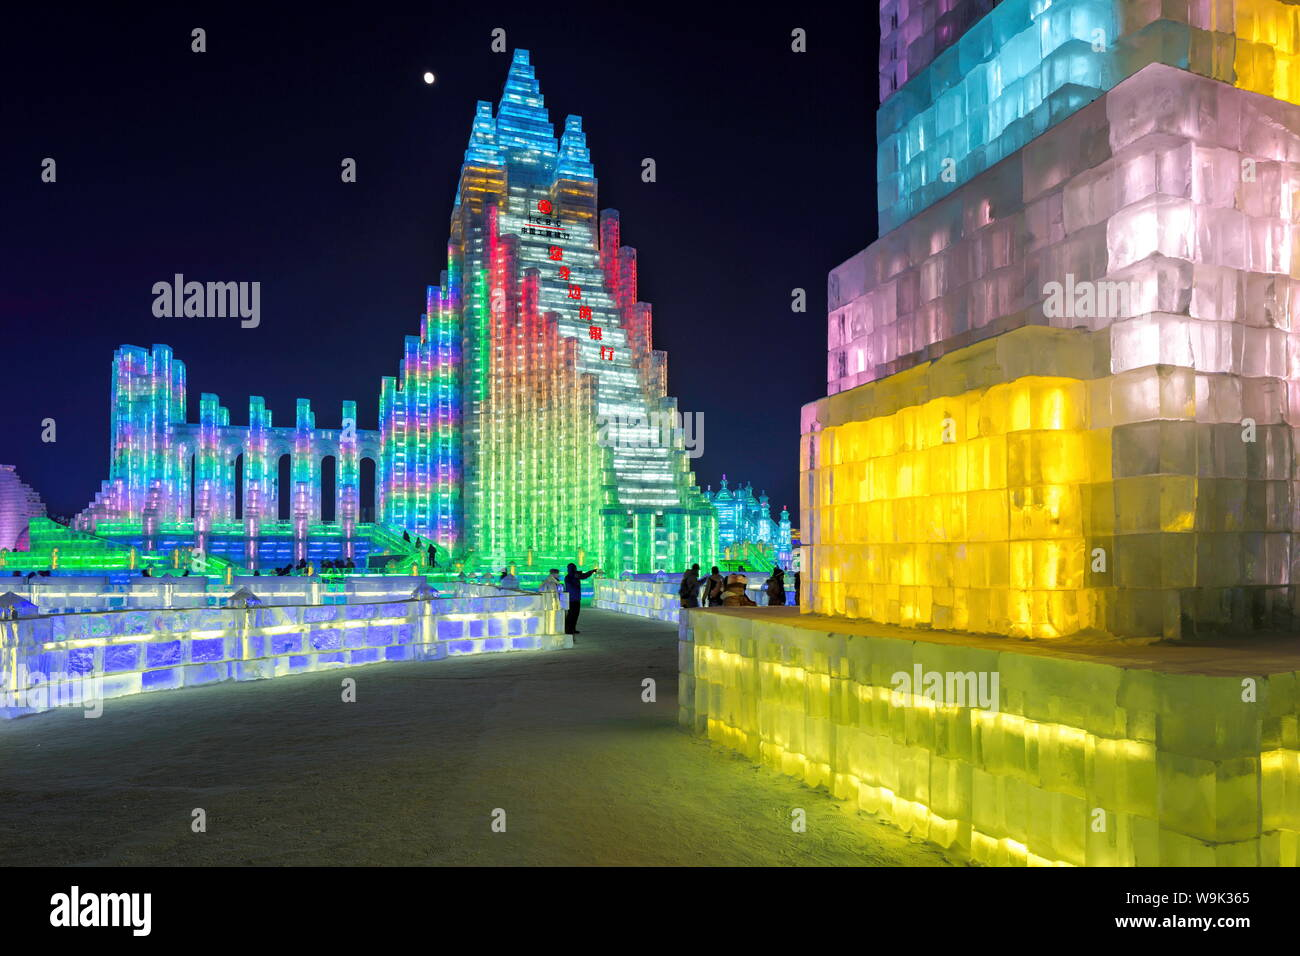 Spectacular illuminated ice sculptures at the Harbin Ice and Snow Festival in Harbin, Heilongjiang Province, China, Asia Stock Photo